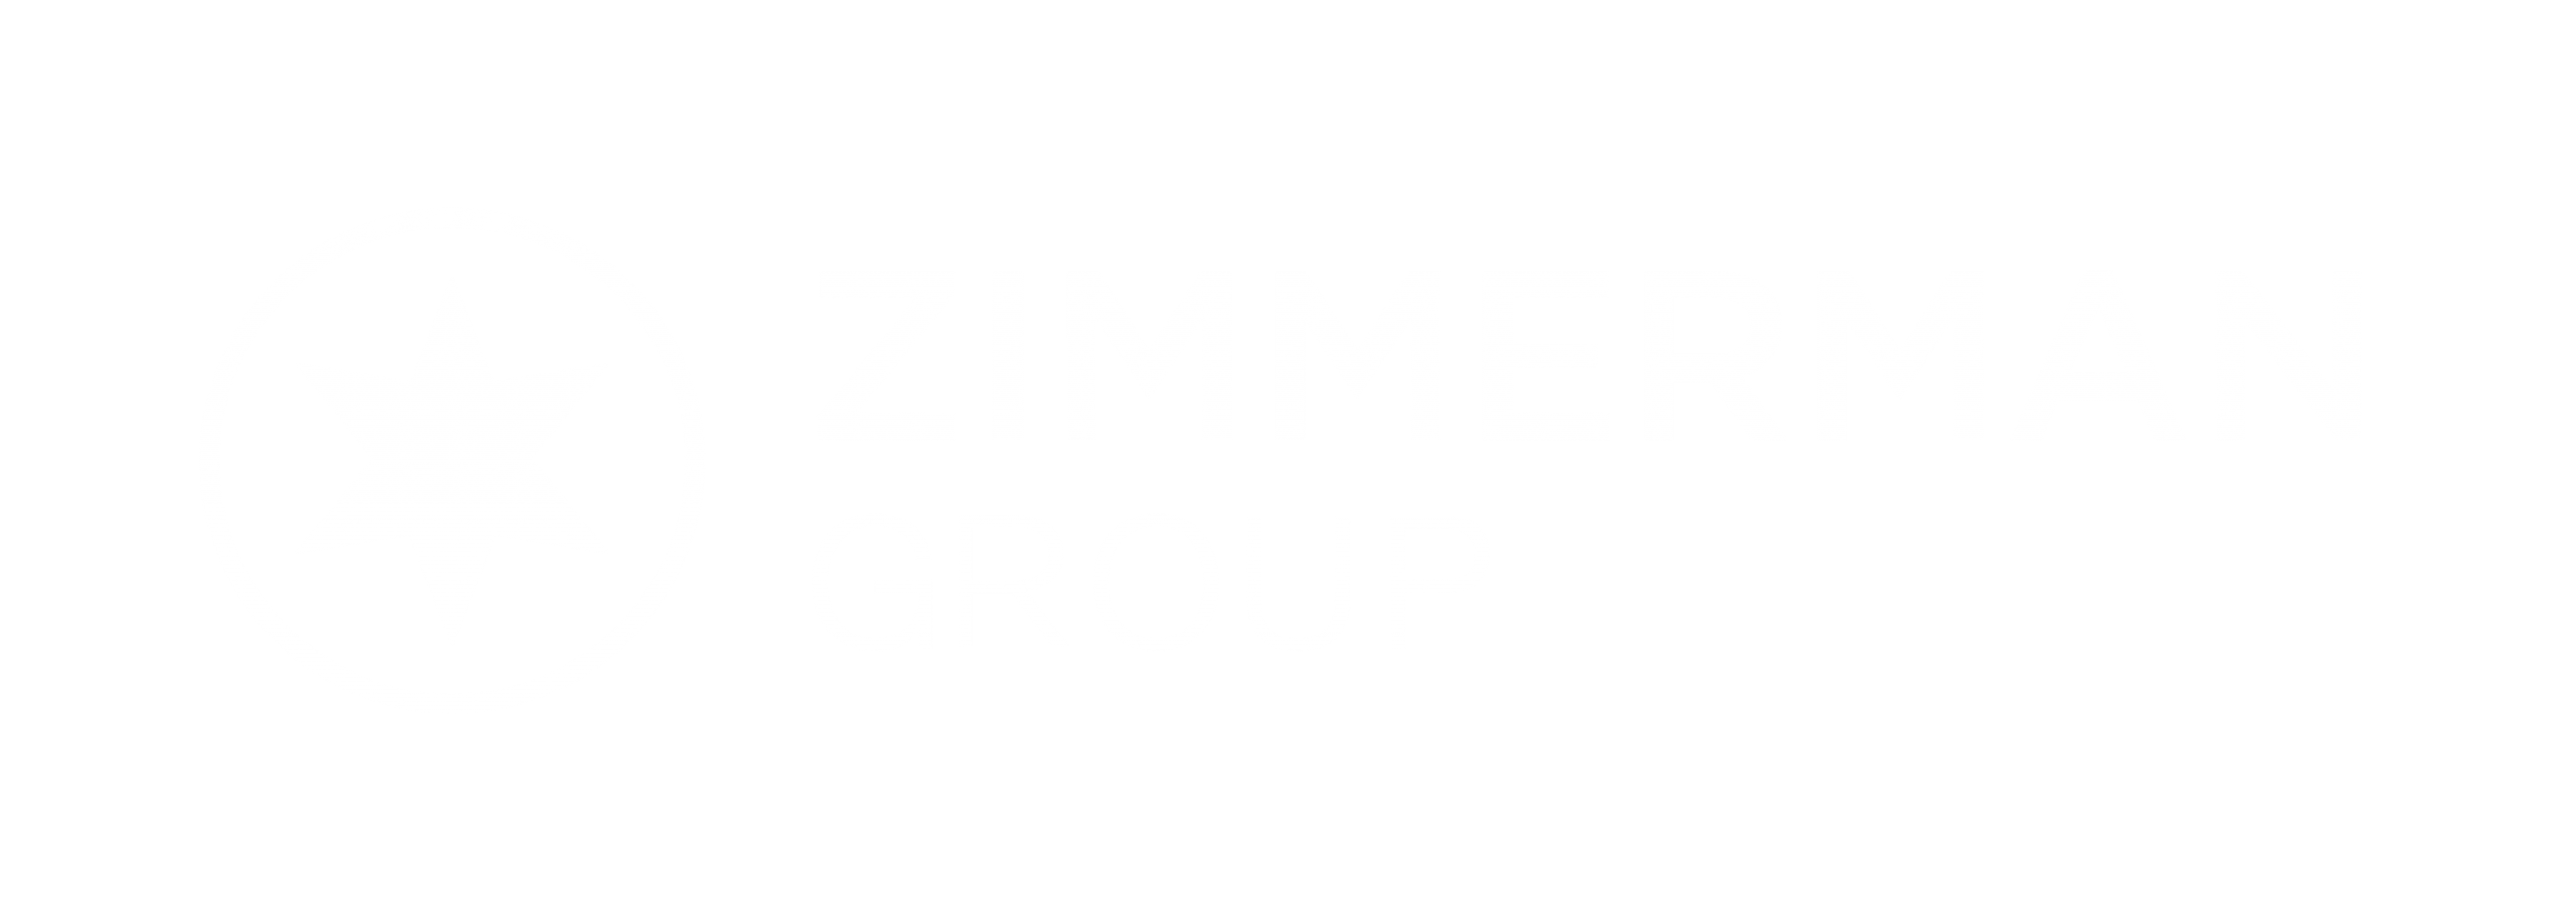 The Zimmerman Group